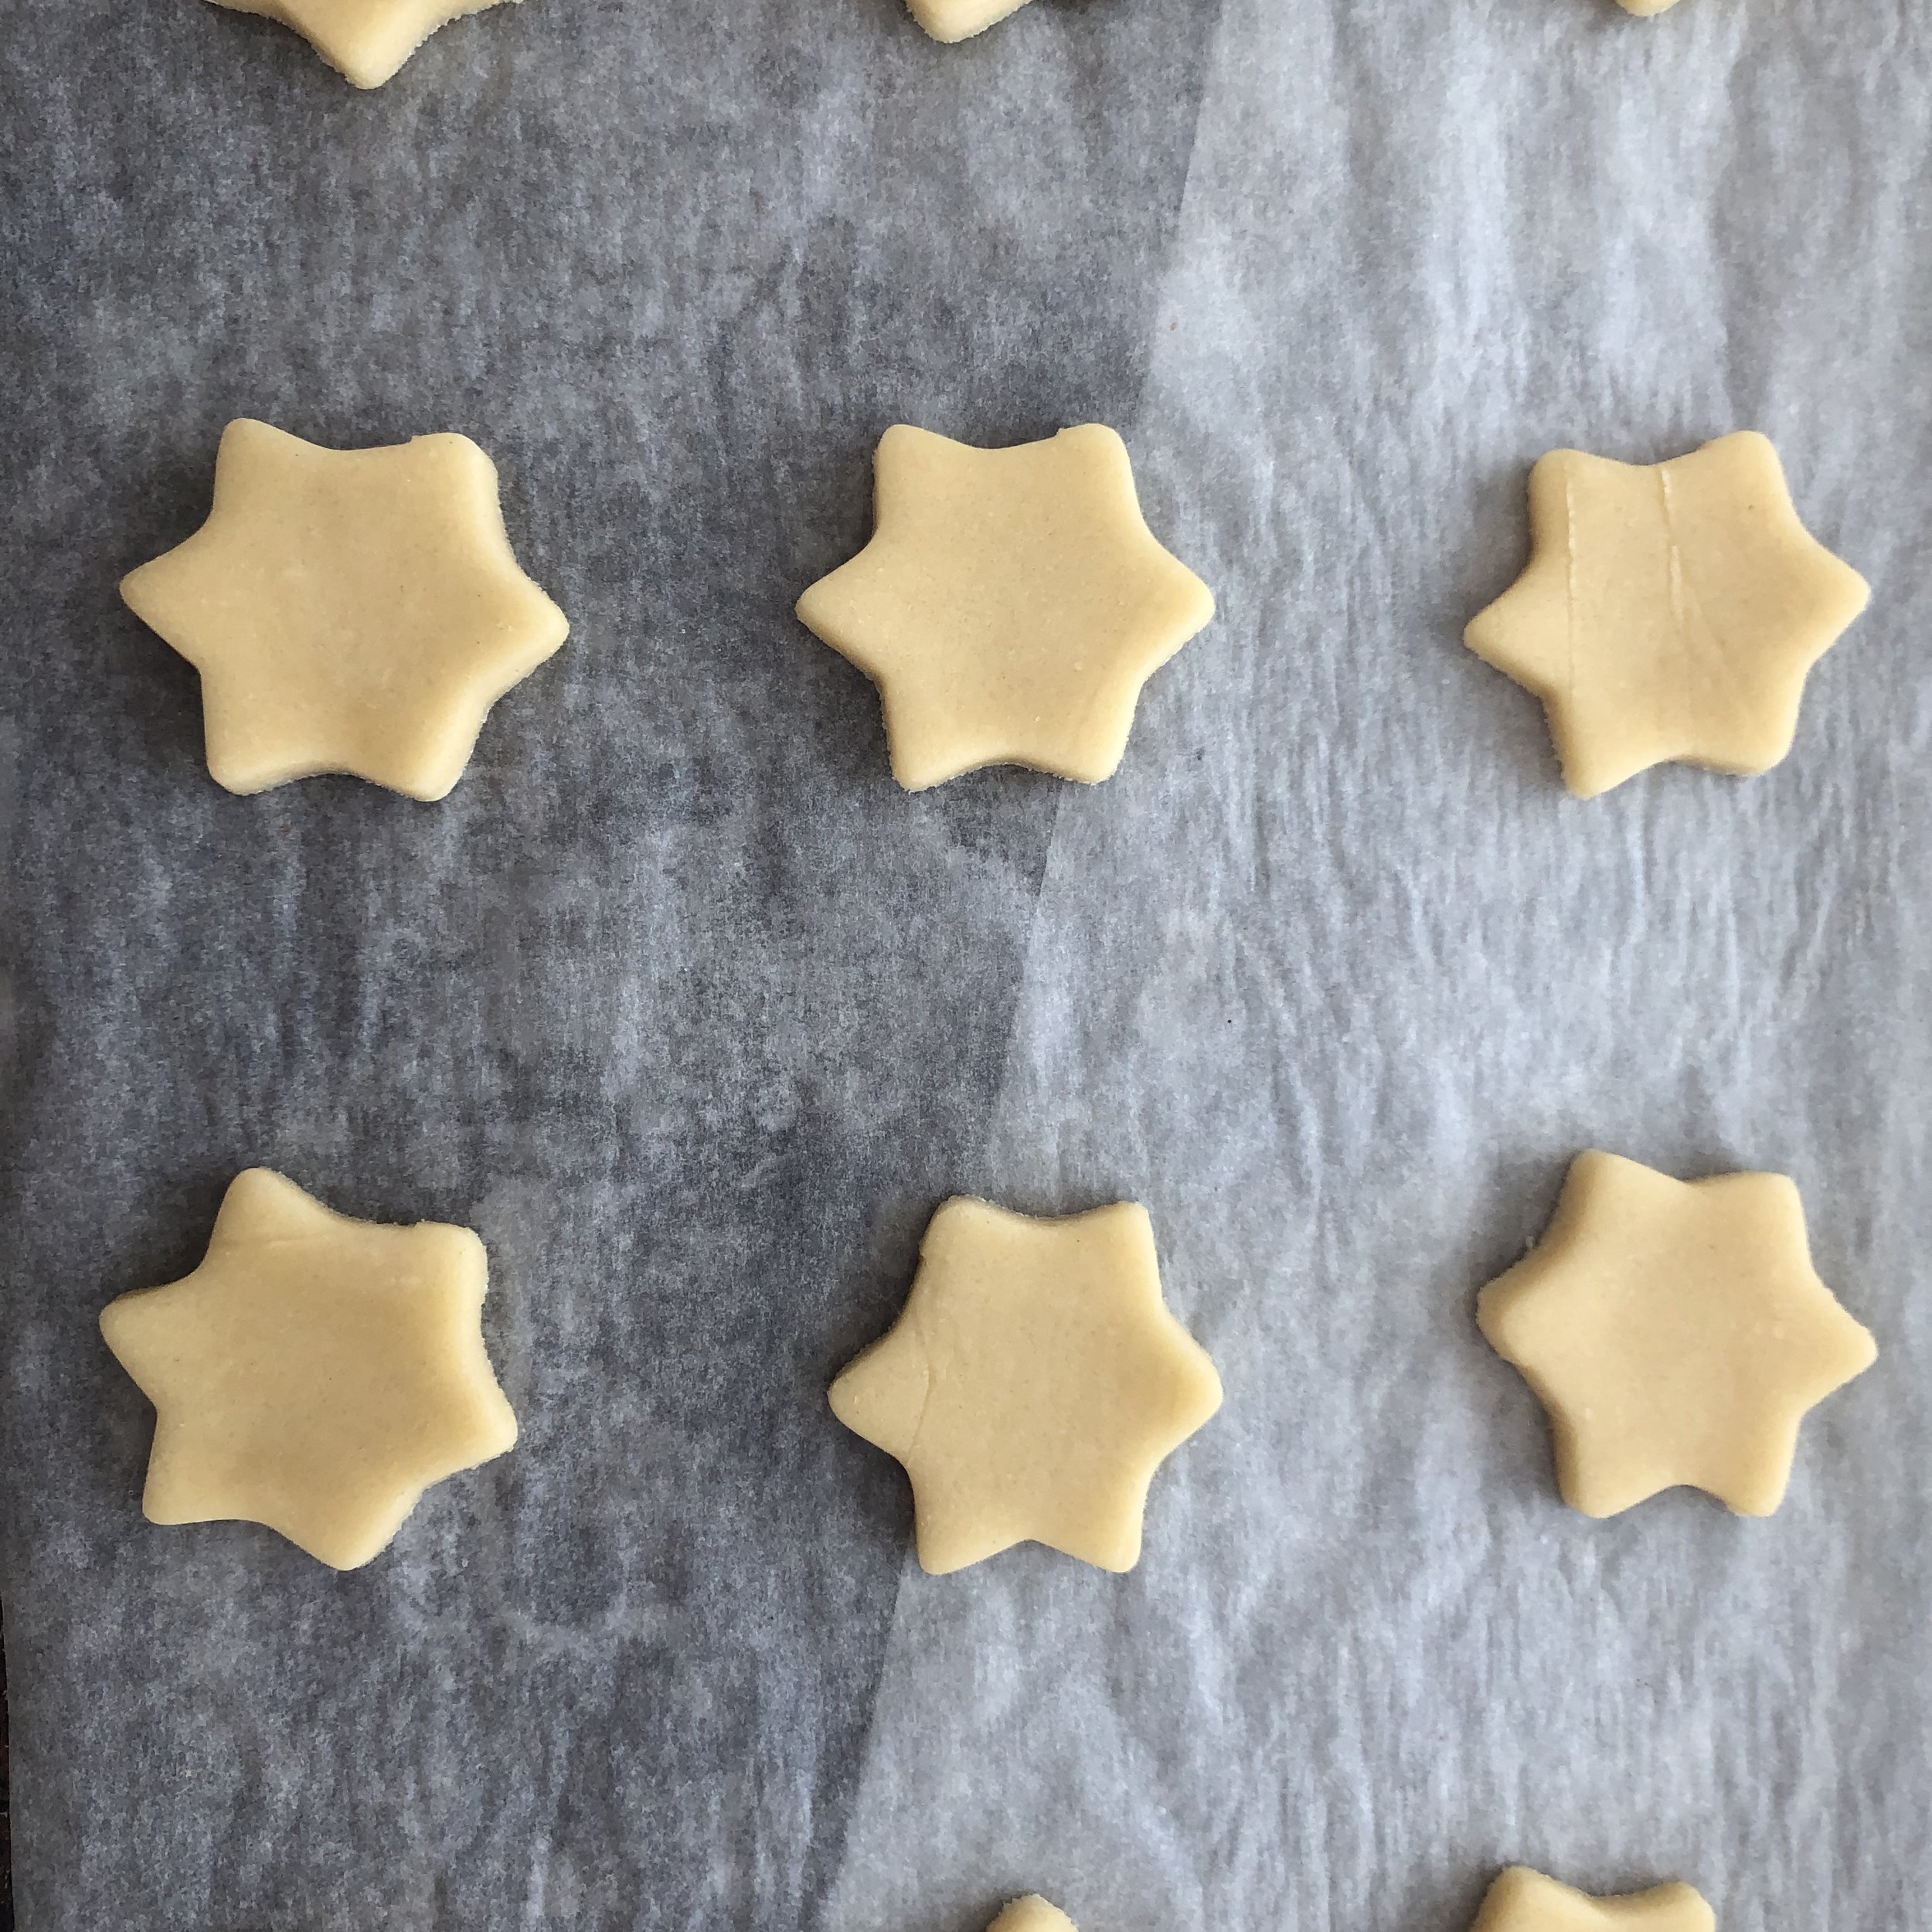 Some stars before being baked